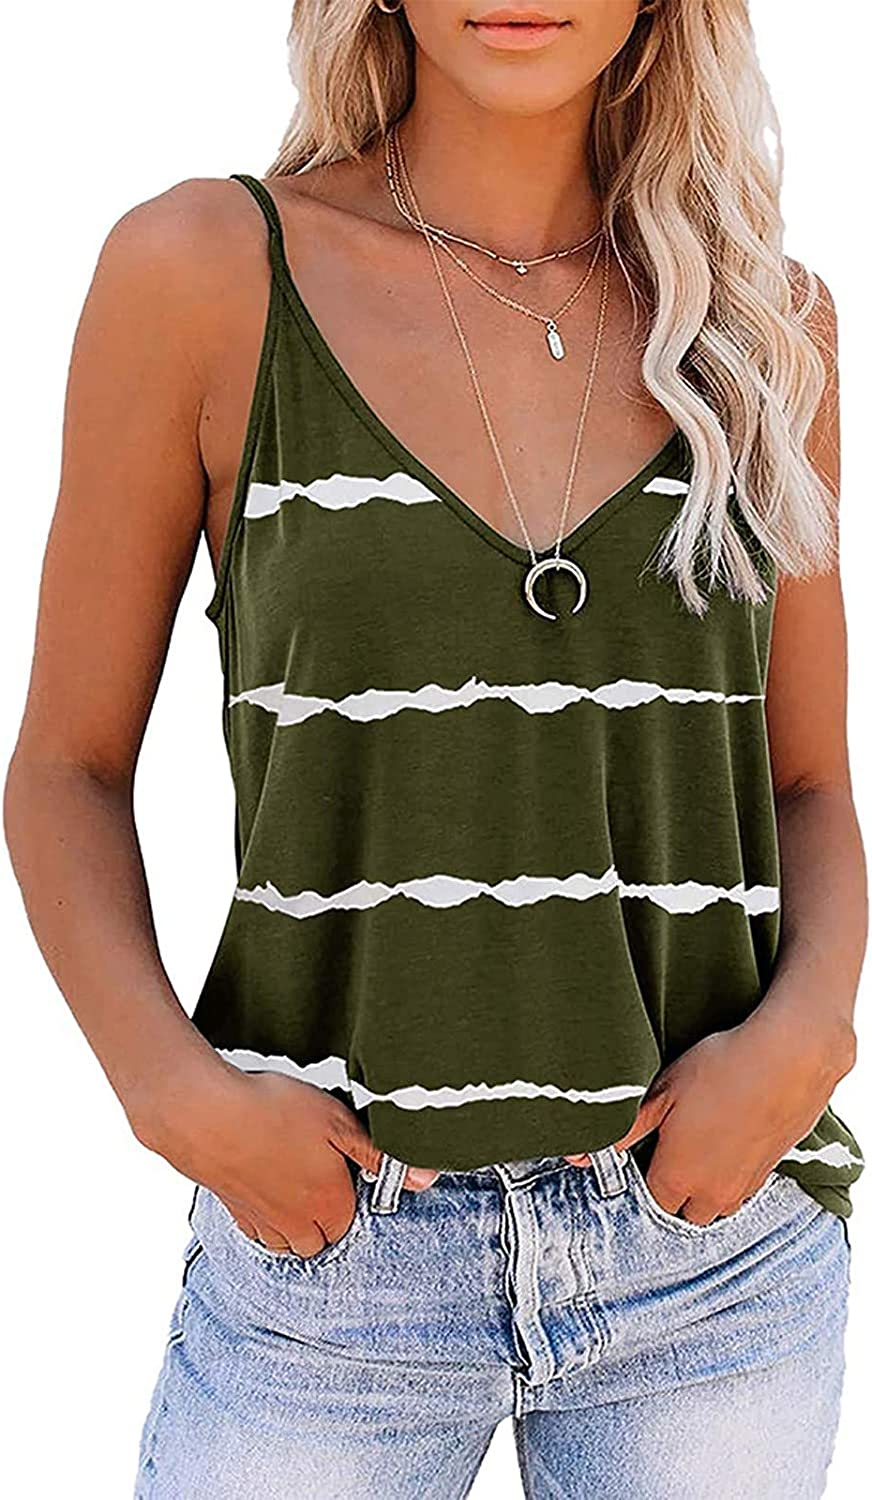 felwors Tank Tops for Women, Womens Fashion Summer Casual Vacation Sleeveless Graphic Tee Shirts Blouse Tops Vest Tops